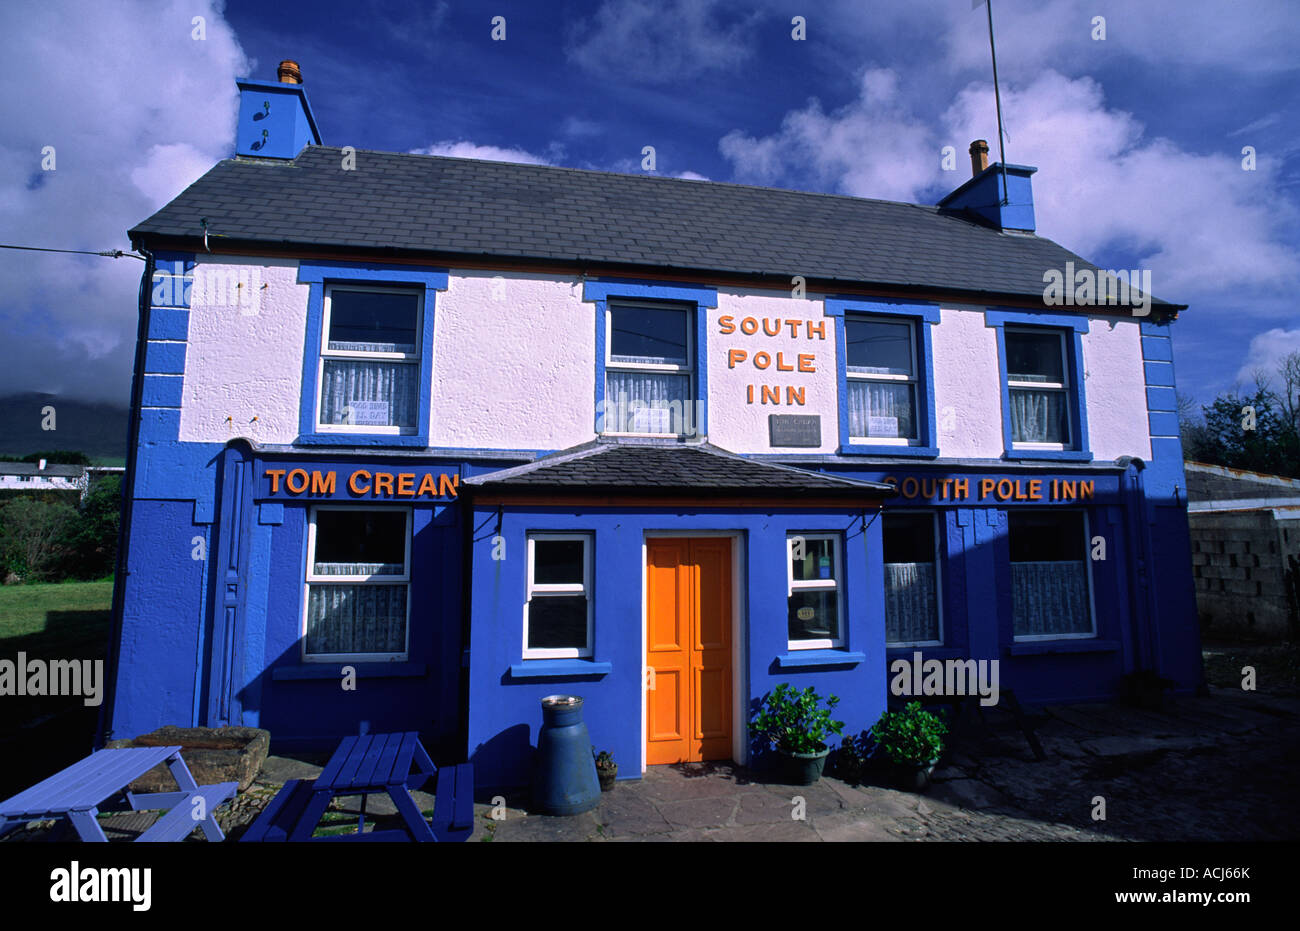 Fassade der Südpol Inn, Tom Crean's Pub. Annascaul, Halbinsel Dingle in der Grafschaft Kerry, Irland. Stockbild